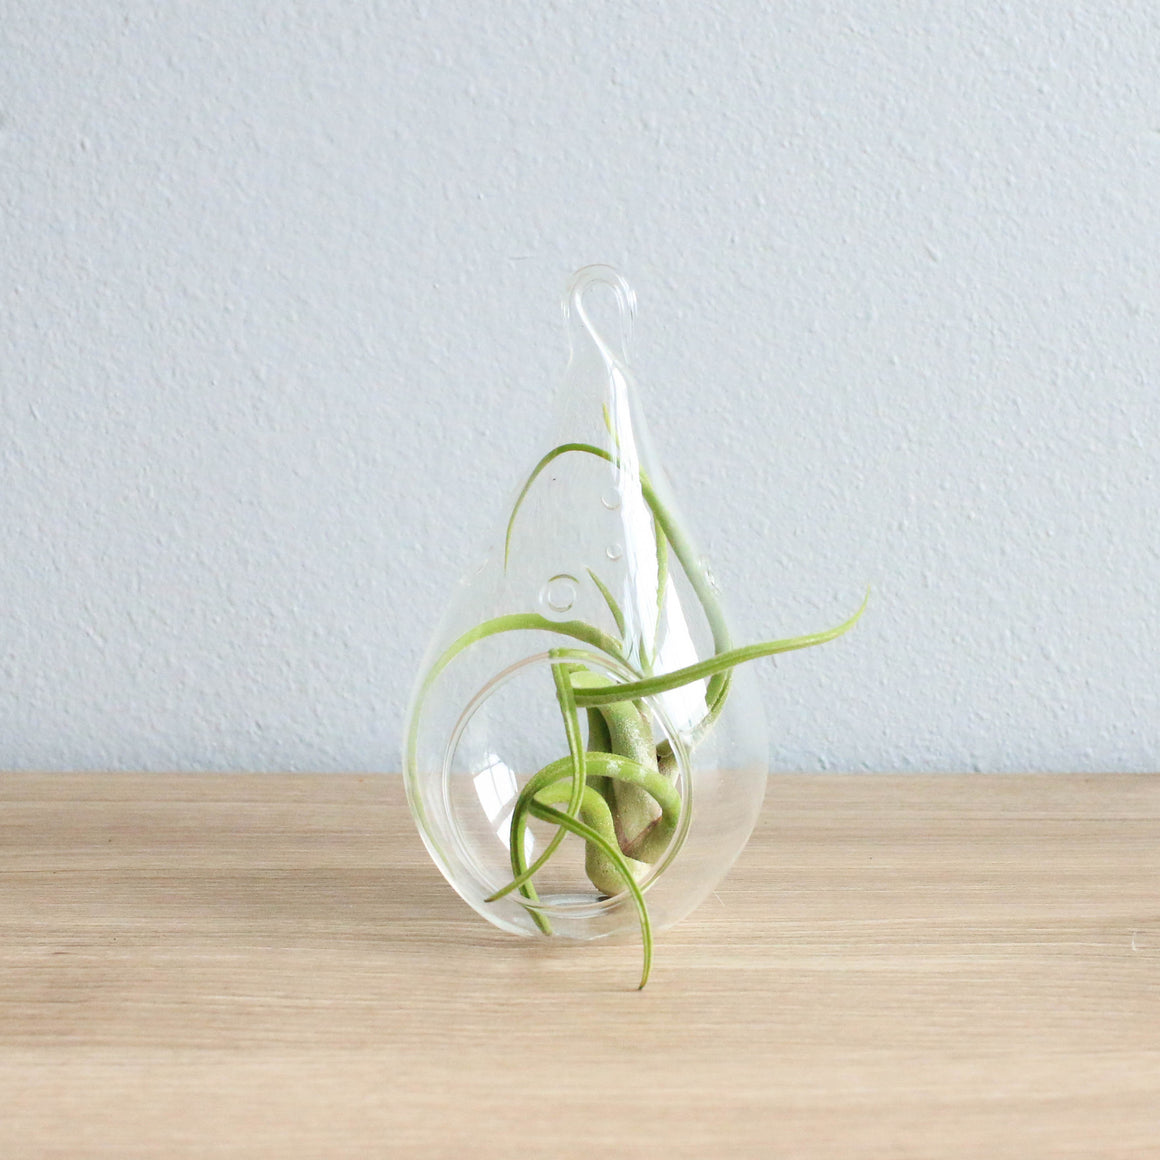 Minimalist Terrarium in a Glass Teardrop - Choose Your Custom Tillandsia Air Plant